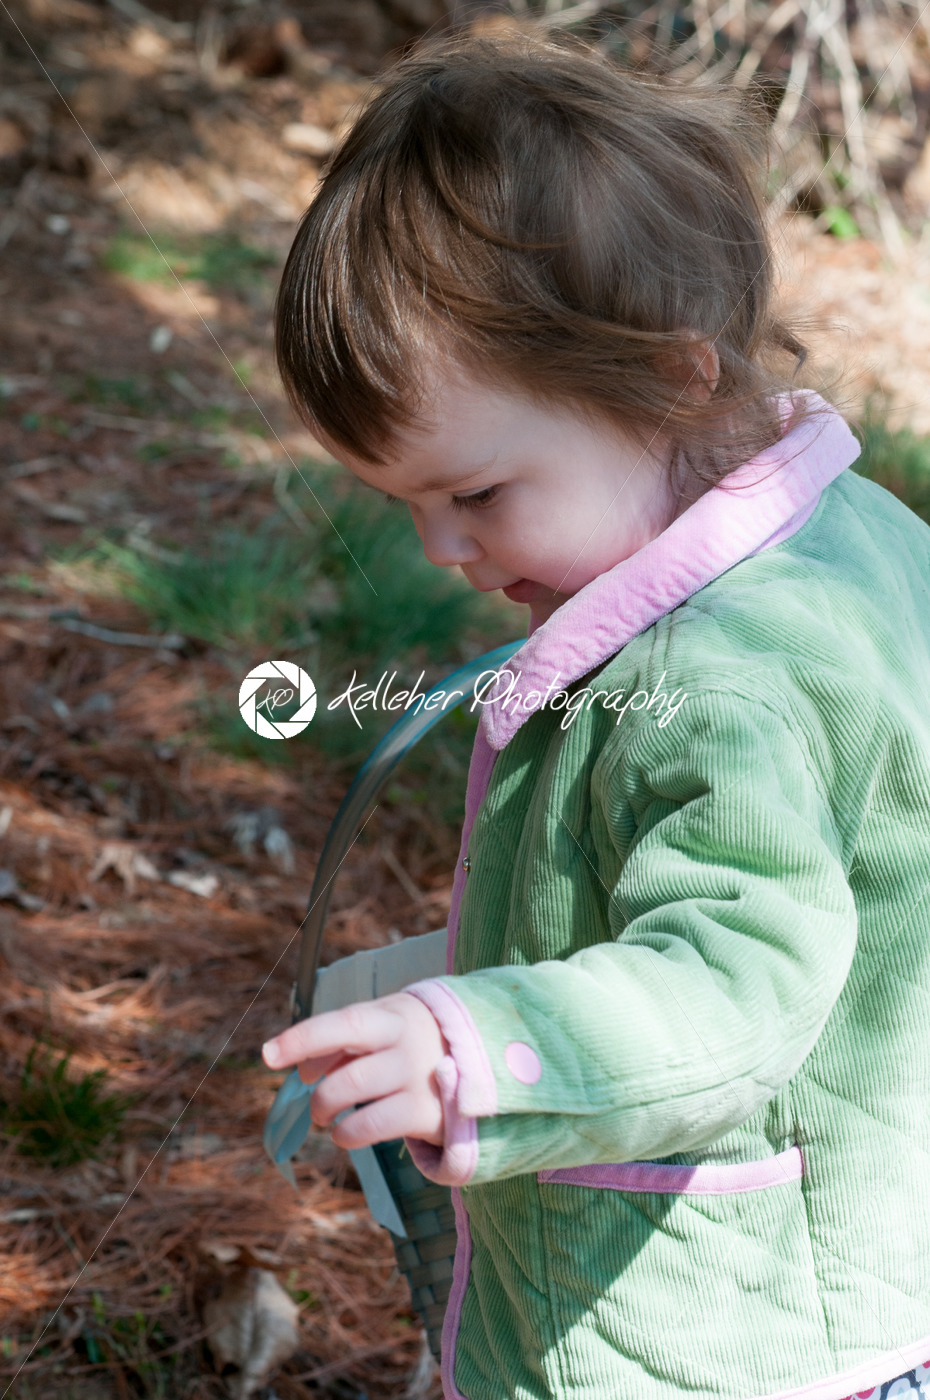 Young little toddler girl with basket searching for easter eggs - Kelleher Photography Store